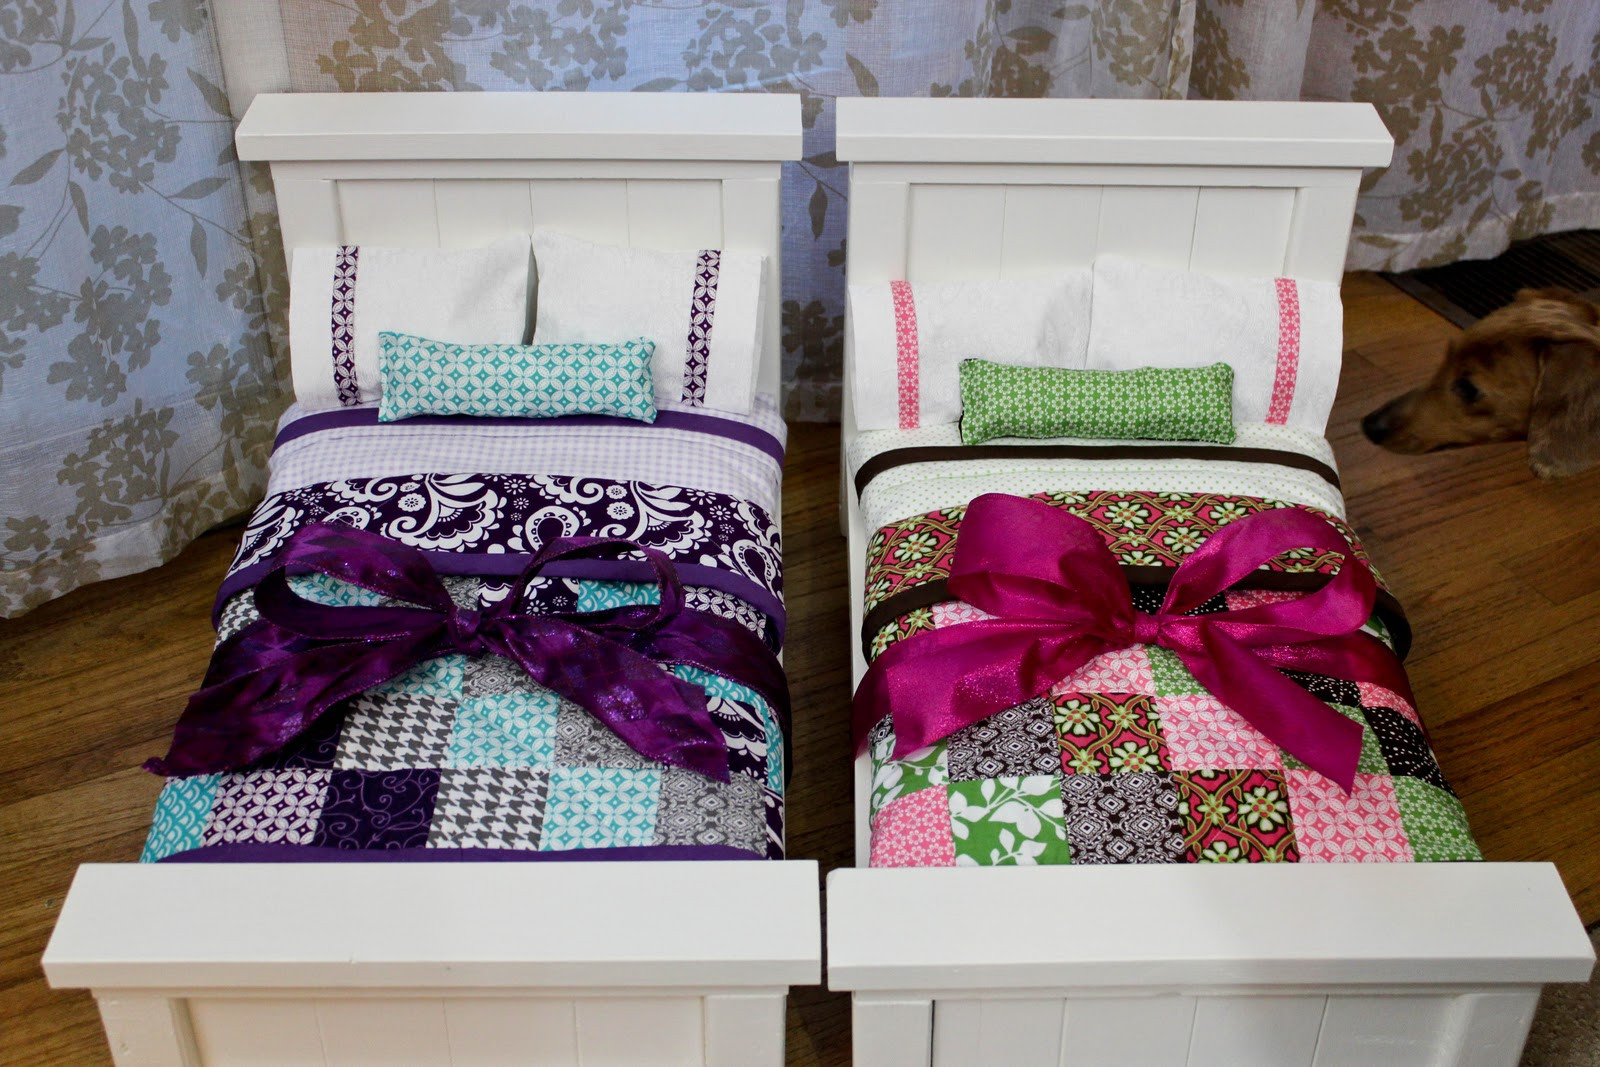 Best ideas about DIY Girls Beds . Save or Pin From Dahlias to Doxies DIY Doll Beds and Tiny Quilts Now.